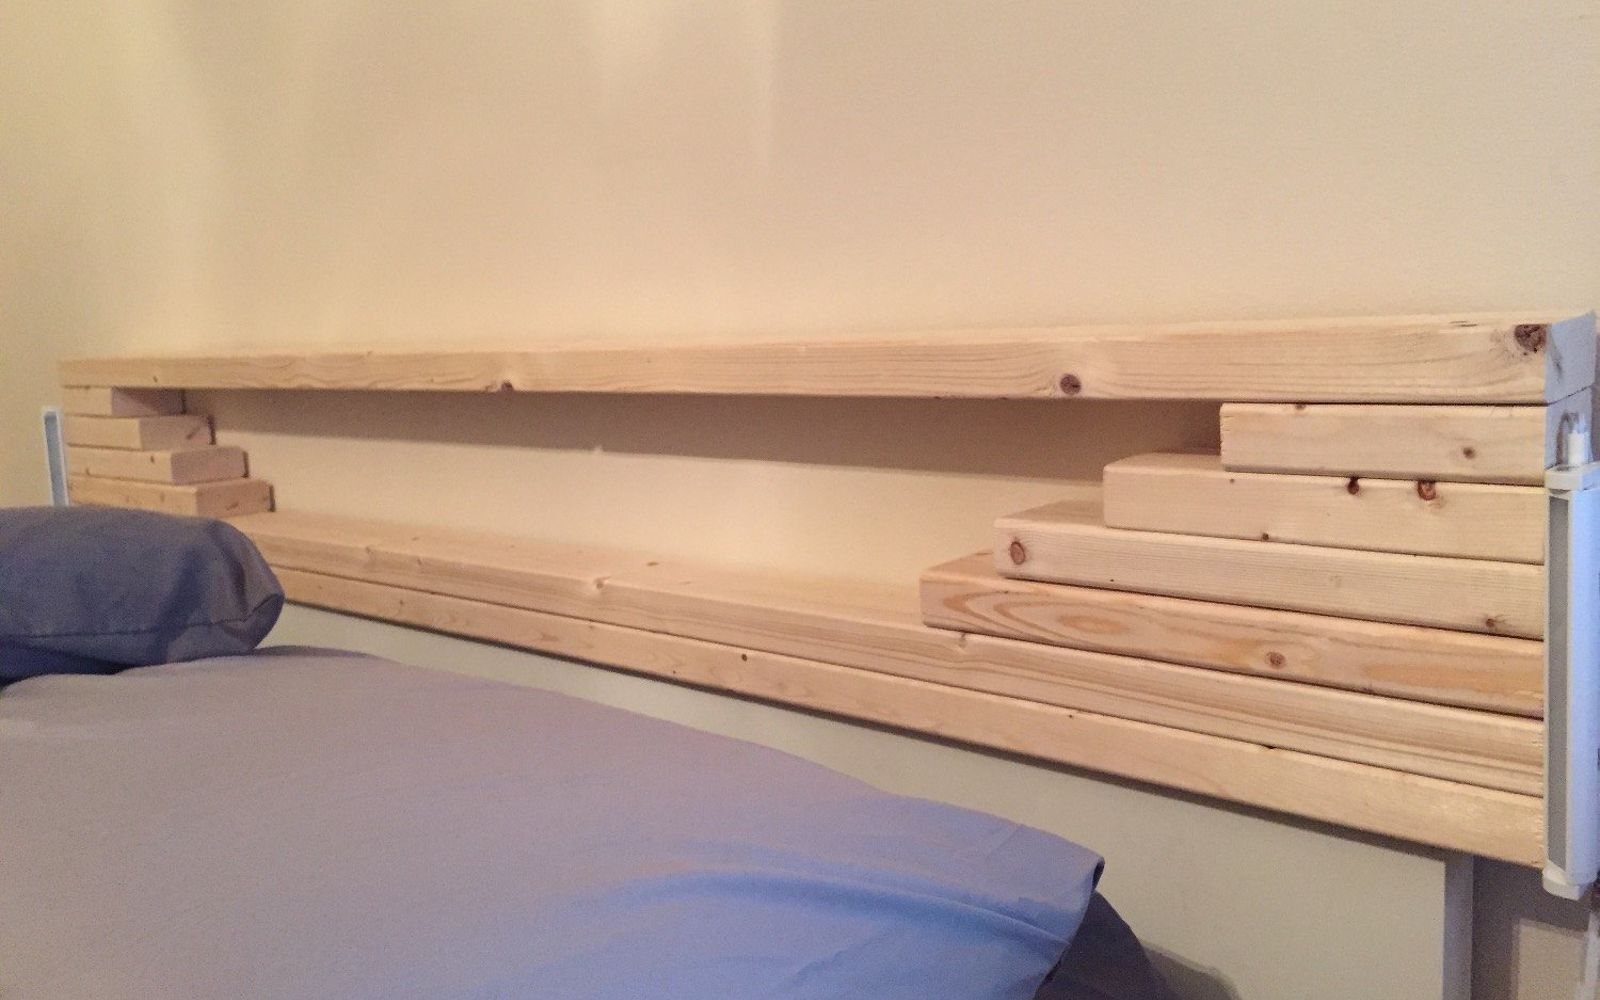 s these are the diy headboard ideas you ve been dreaming of, Make This Simple Mini Shelf Board